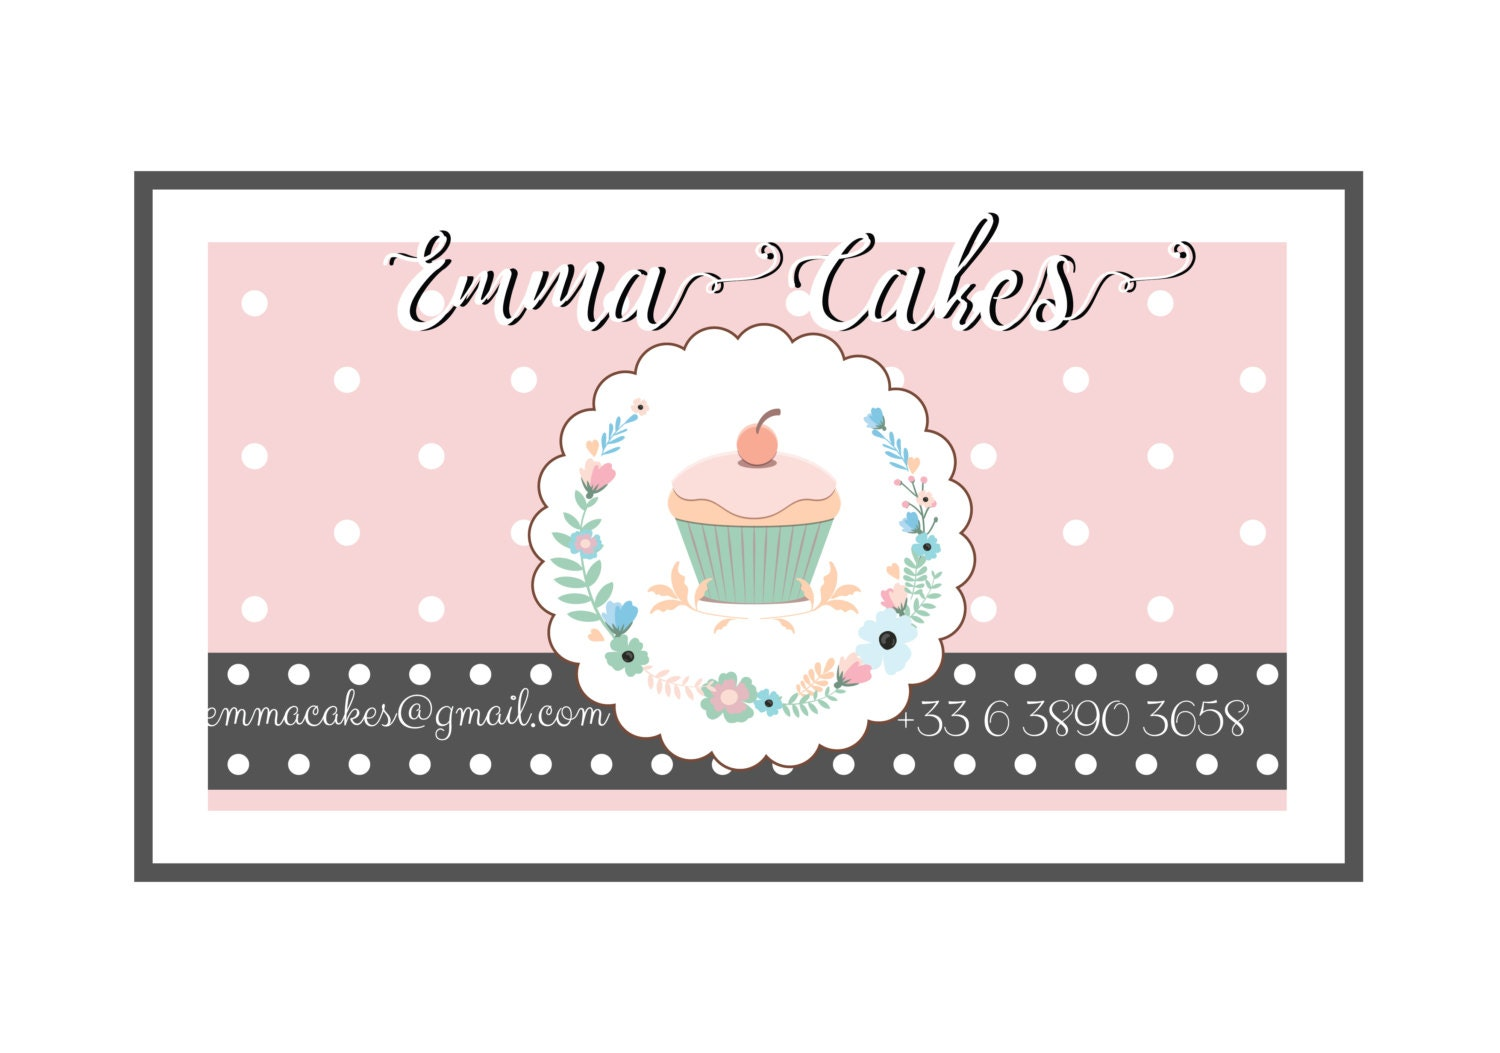 Premade cake business card bakery business card pastel pink